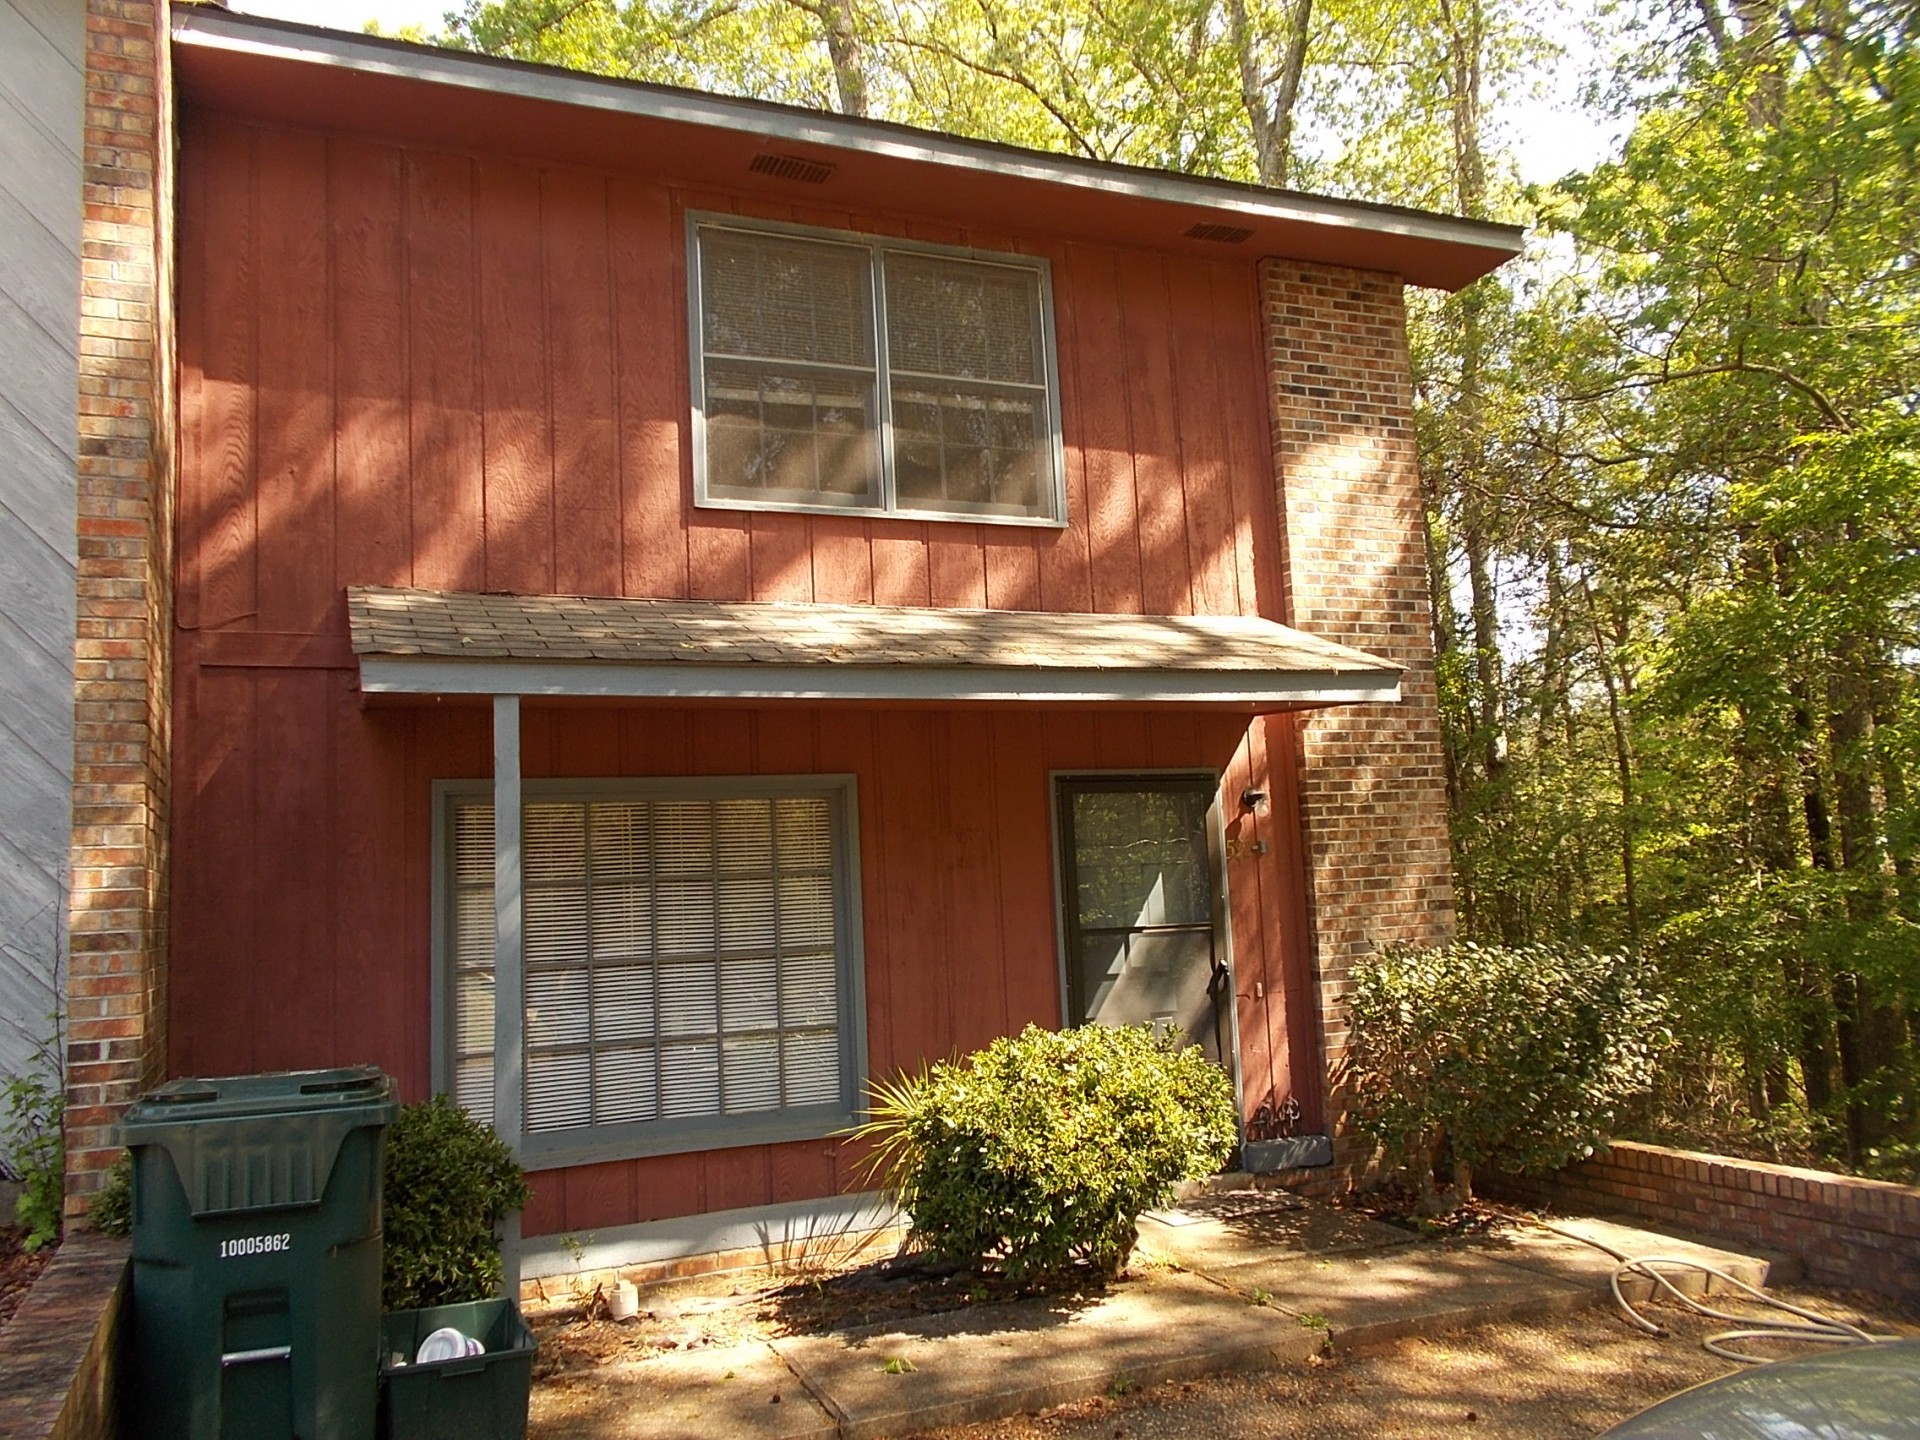 592 I WILLOW OAKS DRIVE, $650/MONTH